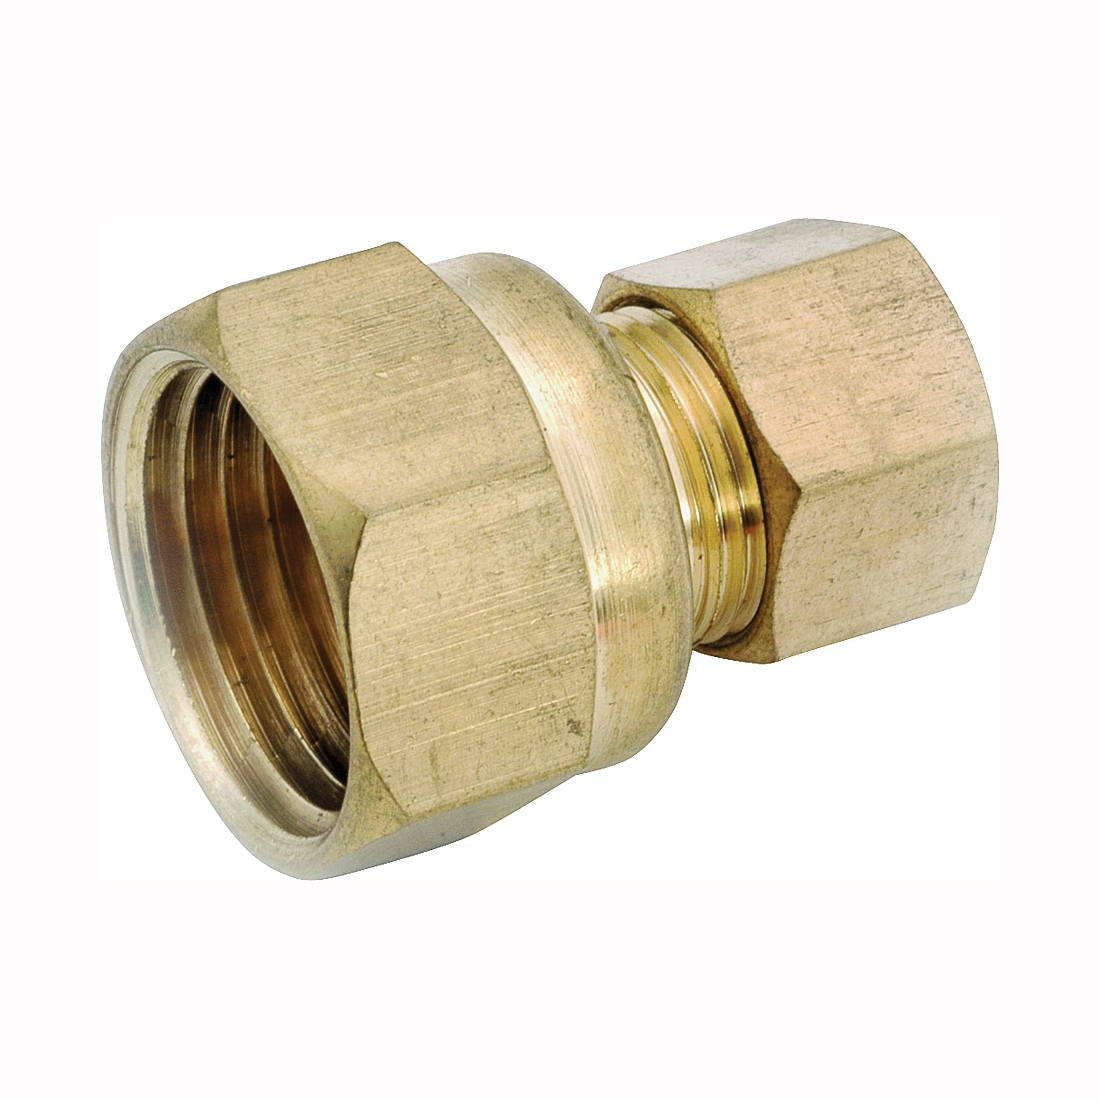 Picture of Anderson Metals 750066-0302 Tubing Coupling, 3/16 x 1/8 in, Compression x FIP, Brass